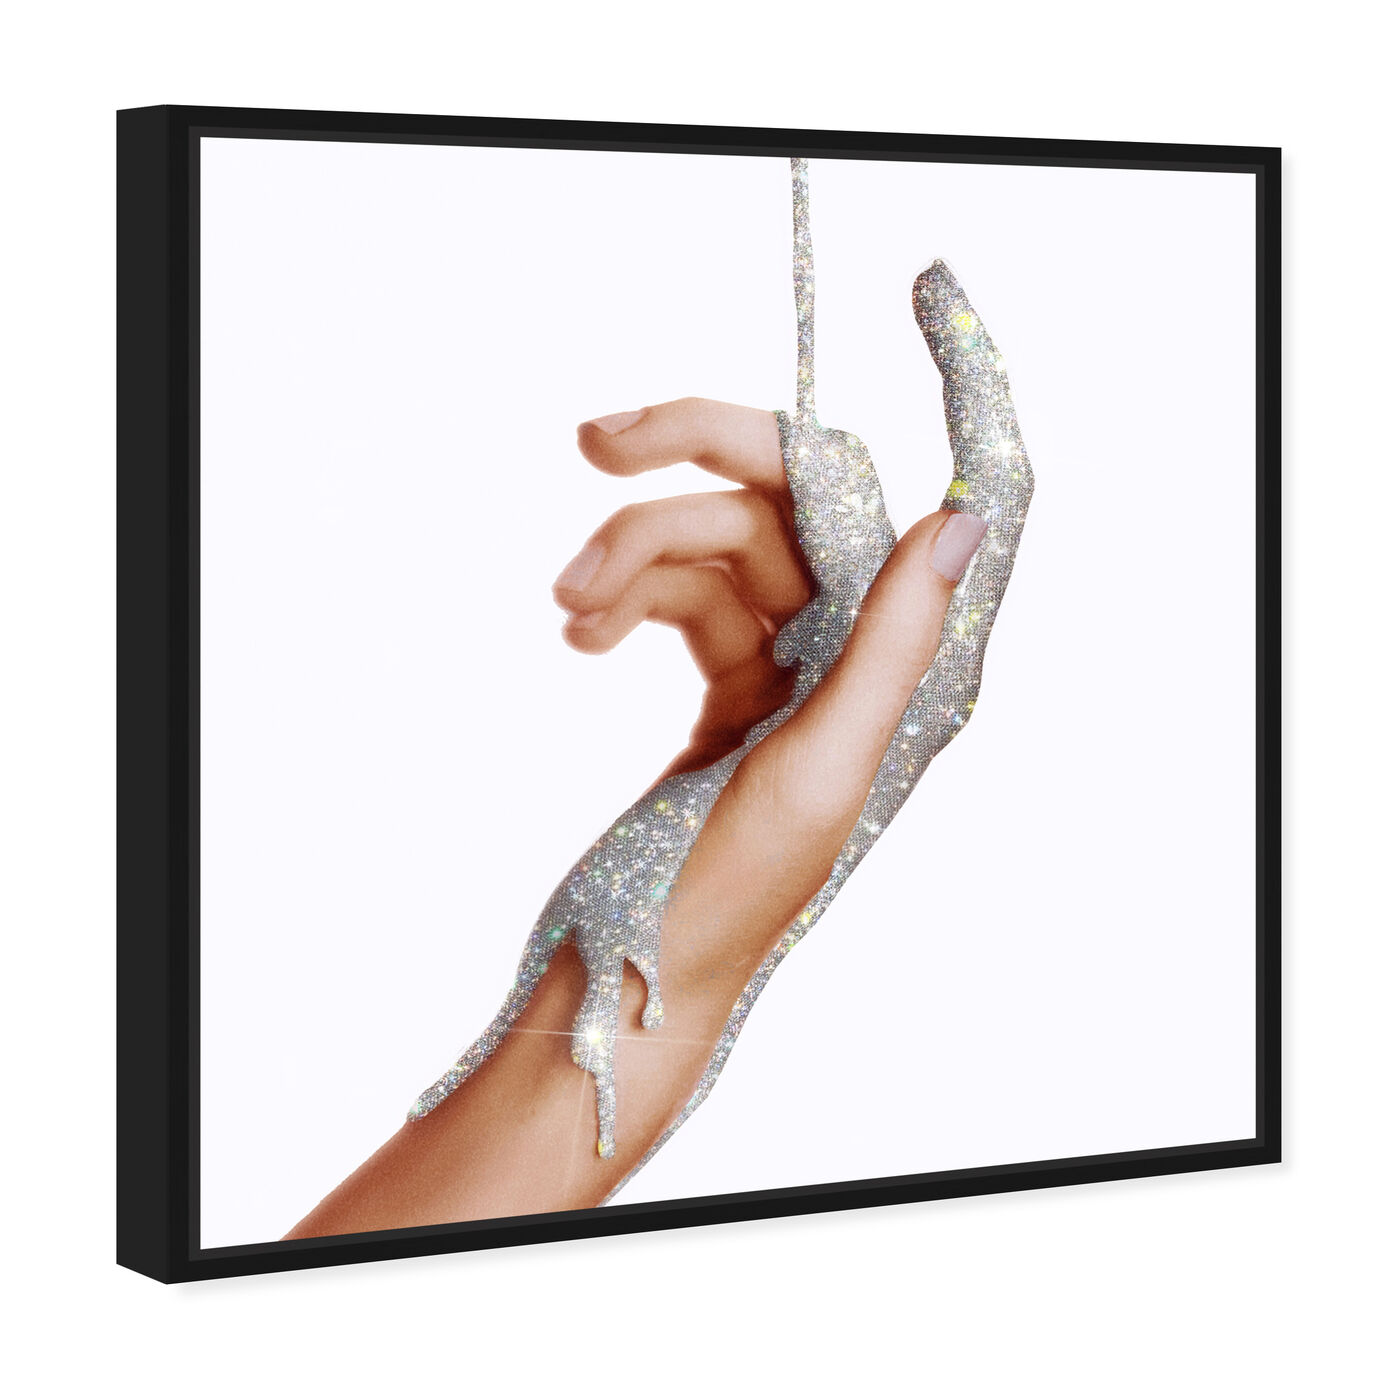 Angled view of Hands and Rhinestones II featuring fashion and glam and jewelry art.